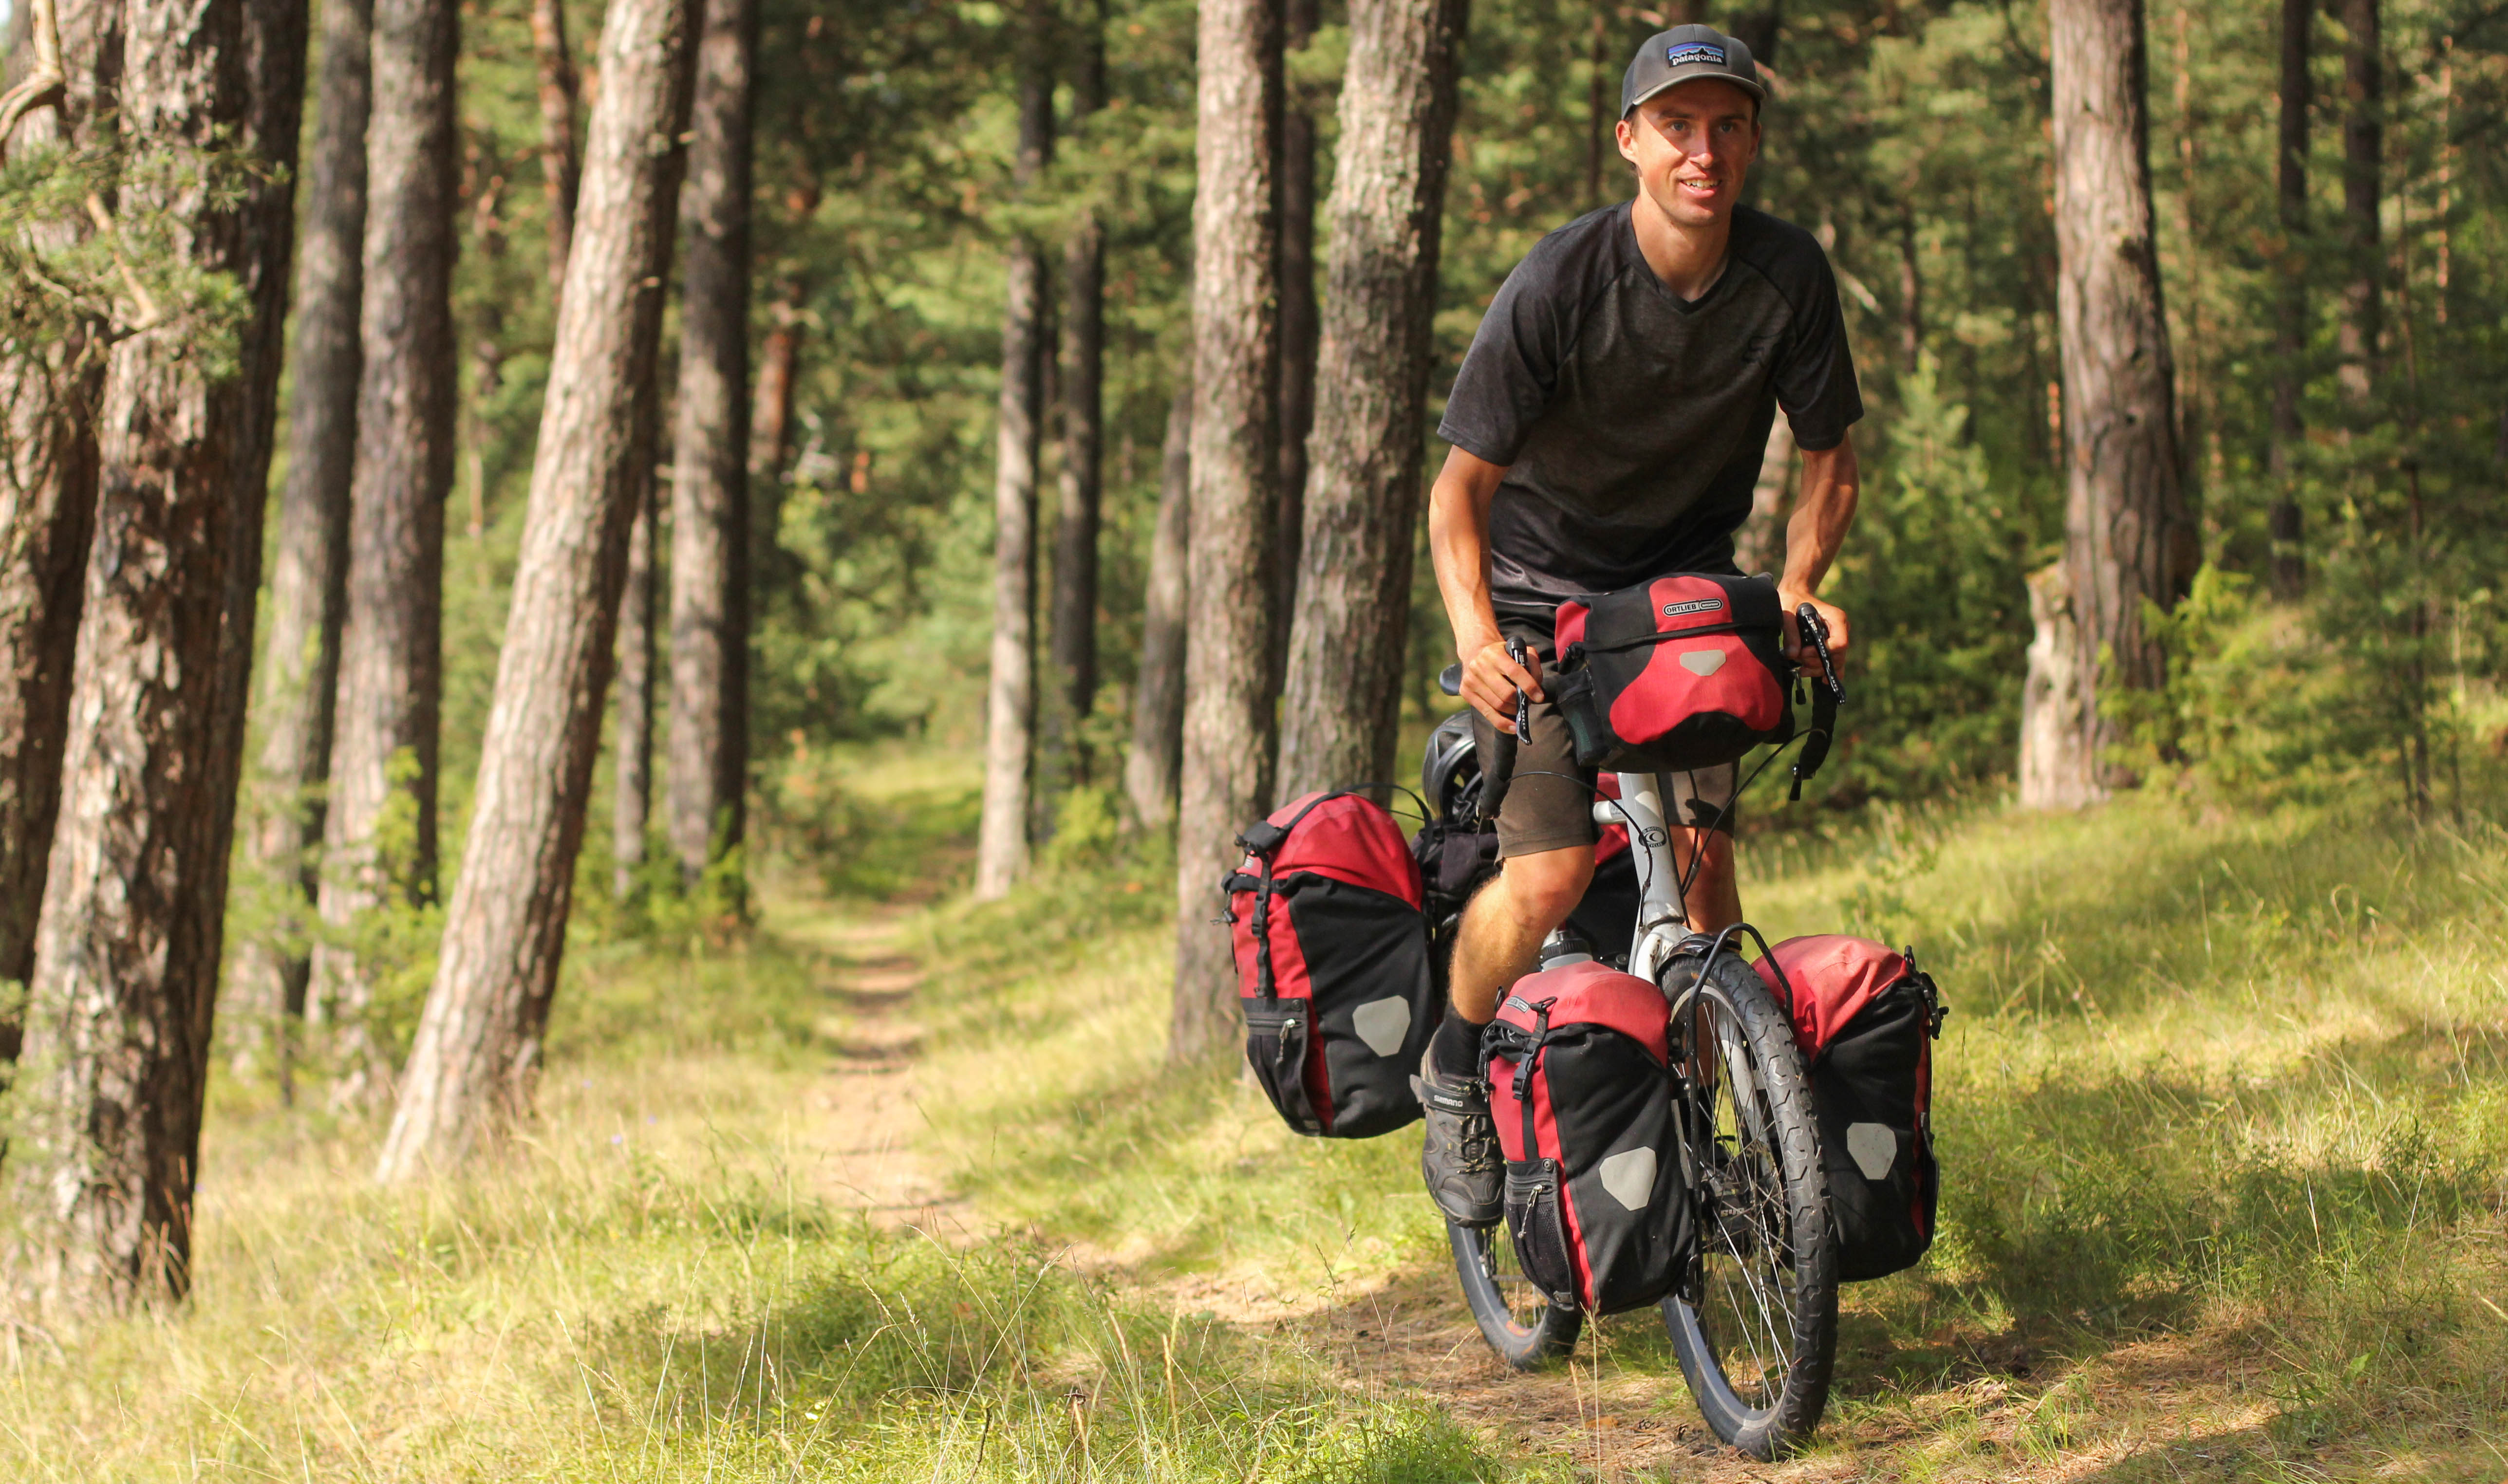 21 Year Old Canadian, Derek Gytenbeek, Circles North America By Bike